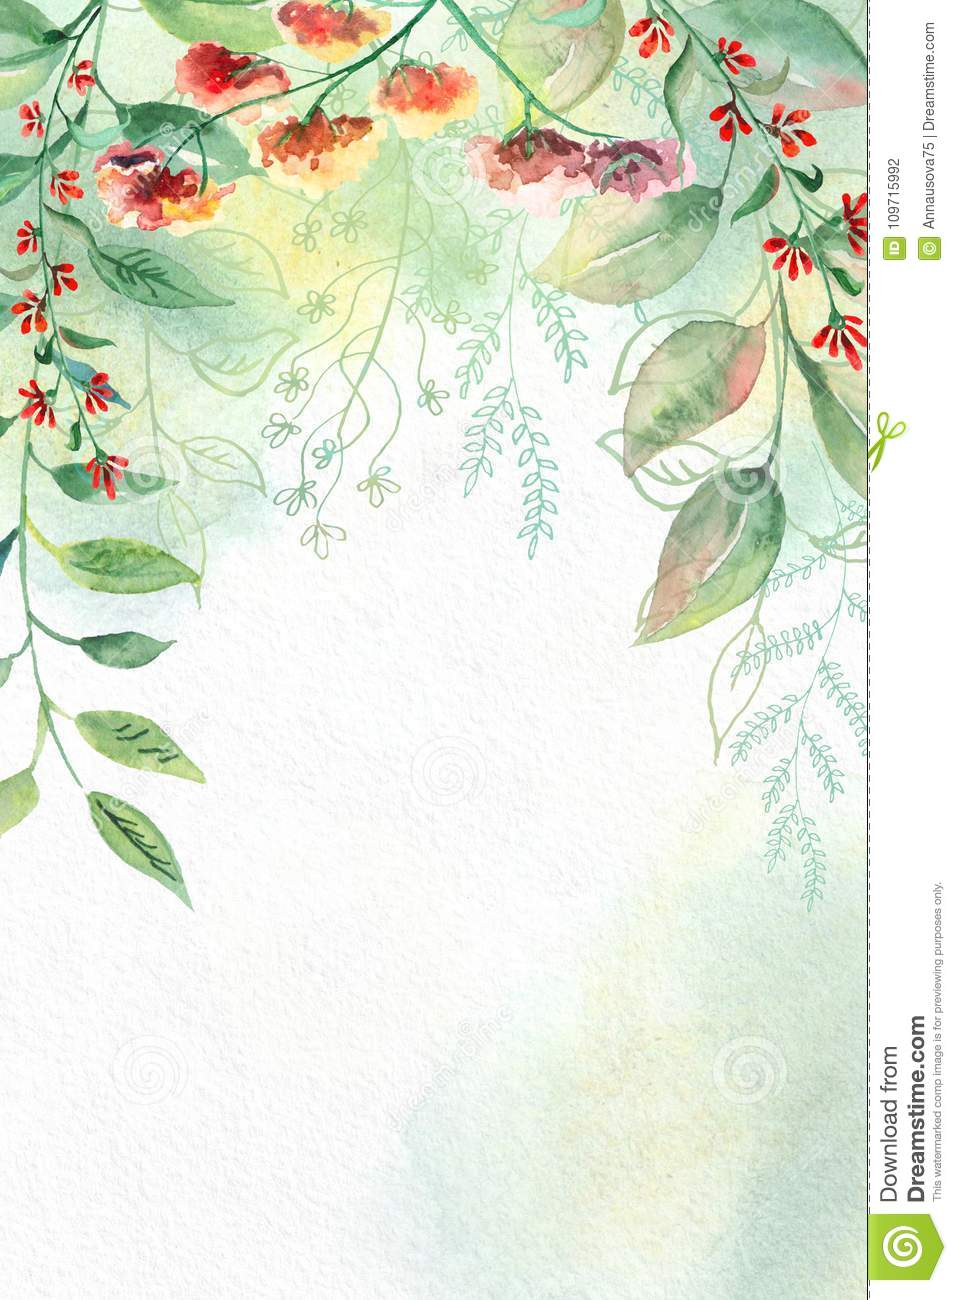 Watercolor flowers on white watercolor paper stock photo image of download watercolor flowers on white watercolor paper stock photo image of flower illustration mightylinksfo